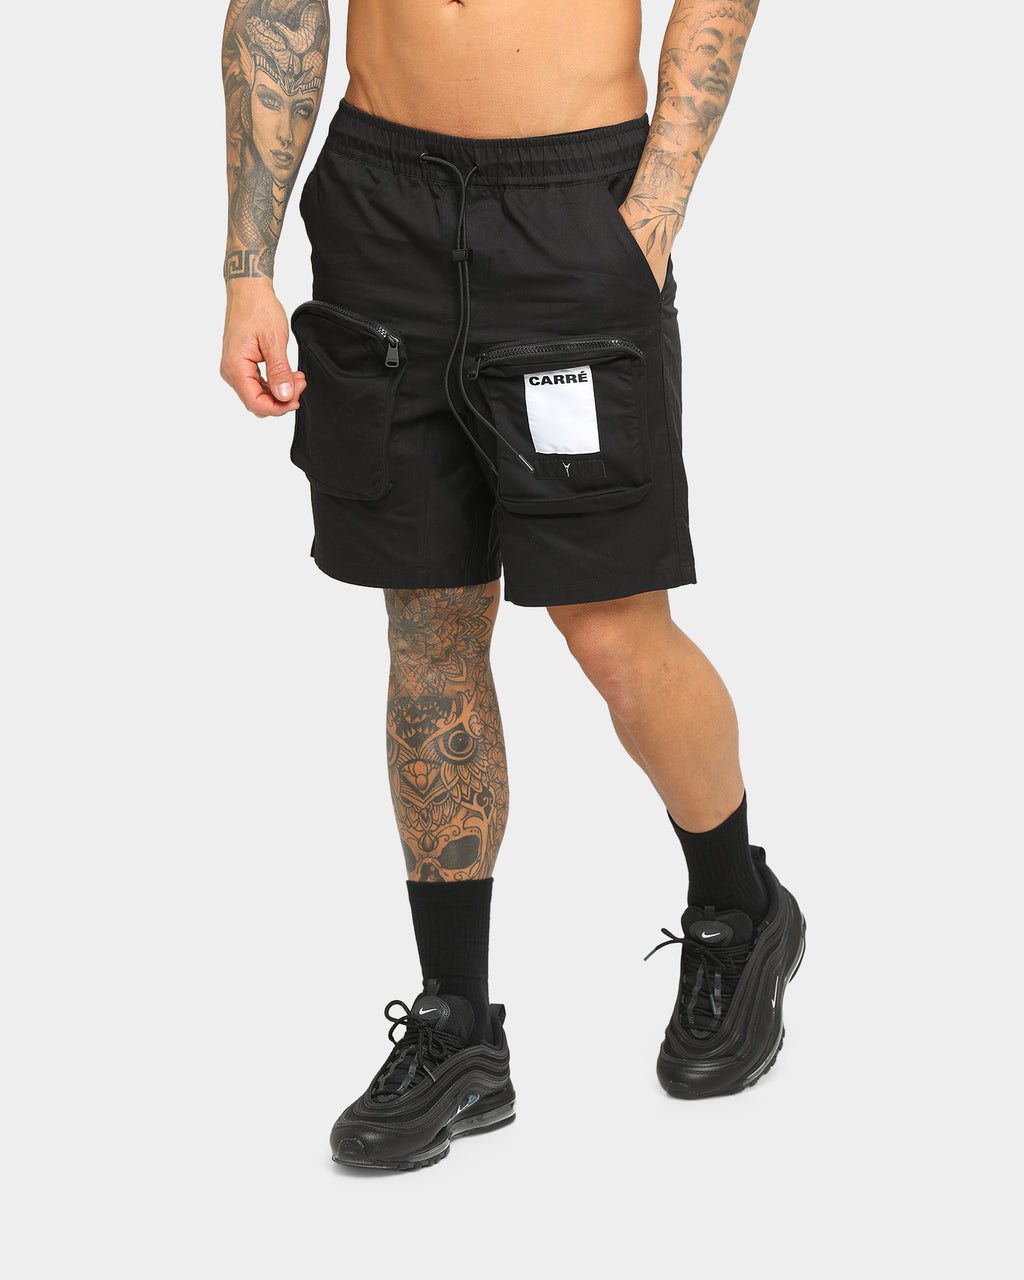 Carré Inverser Short Black